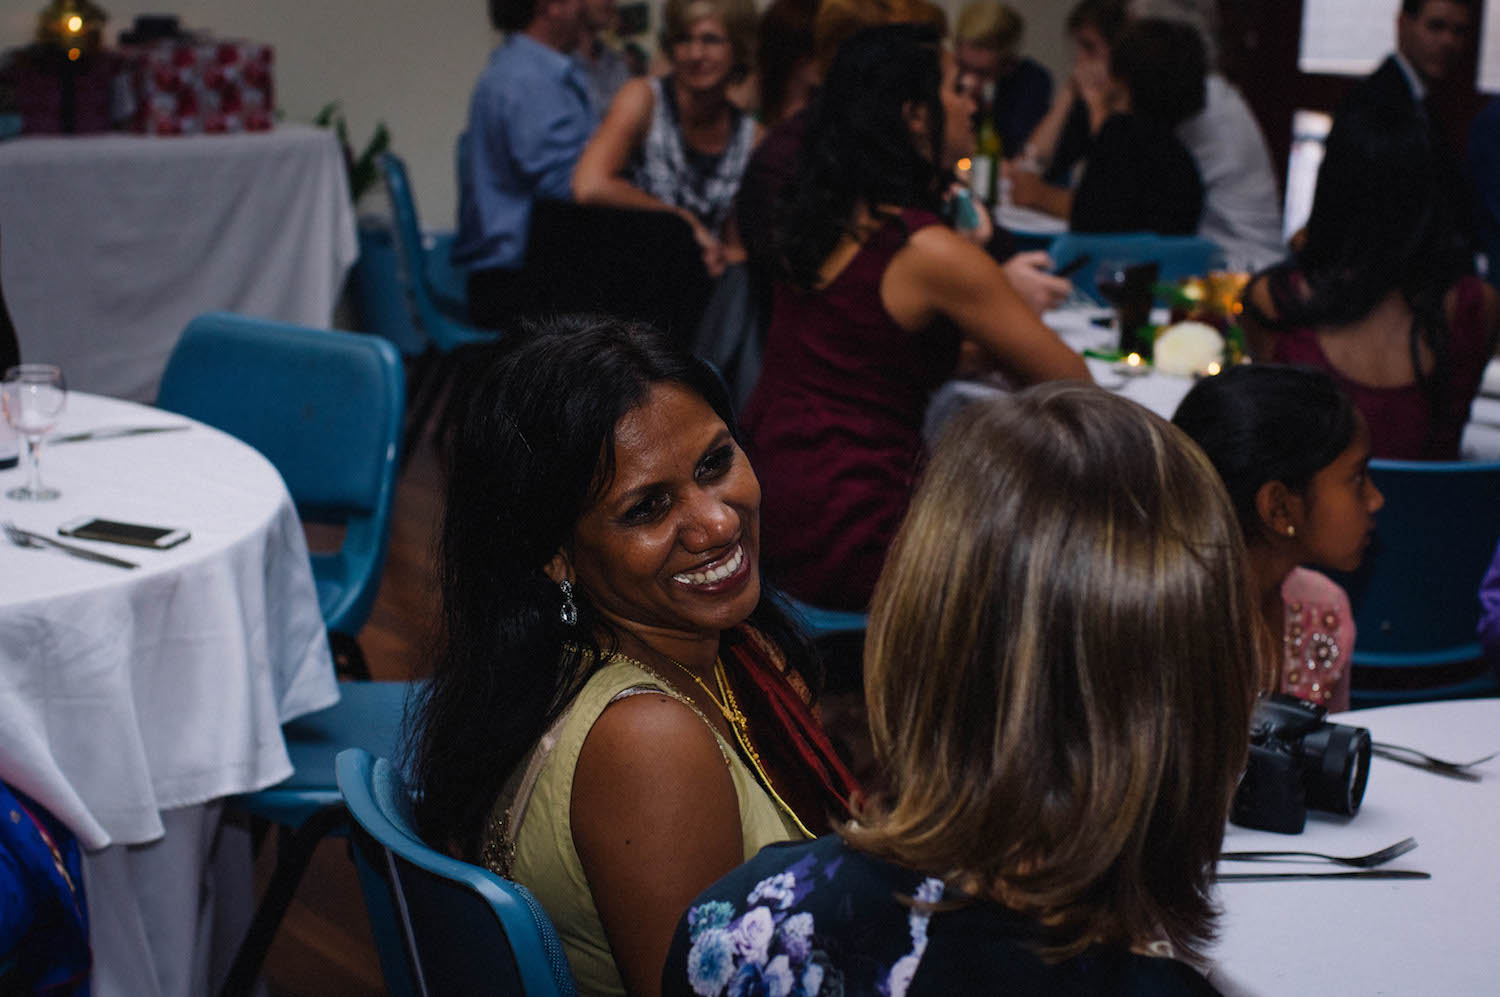 Guests laugh & talk together during a wedding reception at St Matthew's Anglican Church, Subiaco.